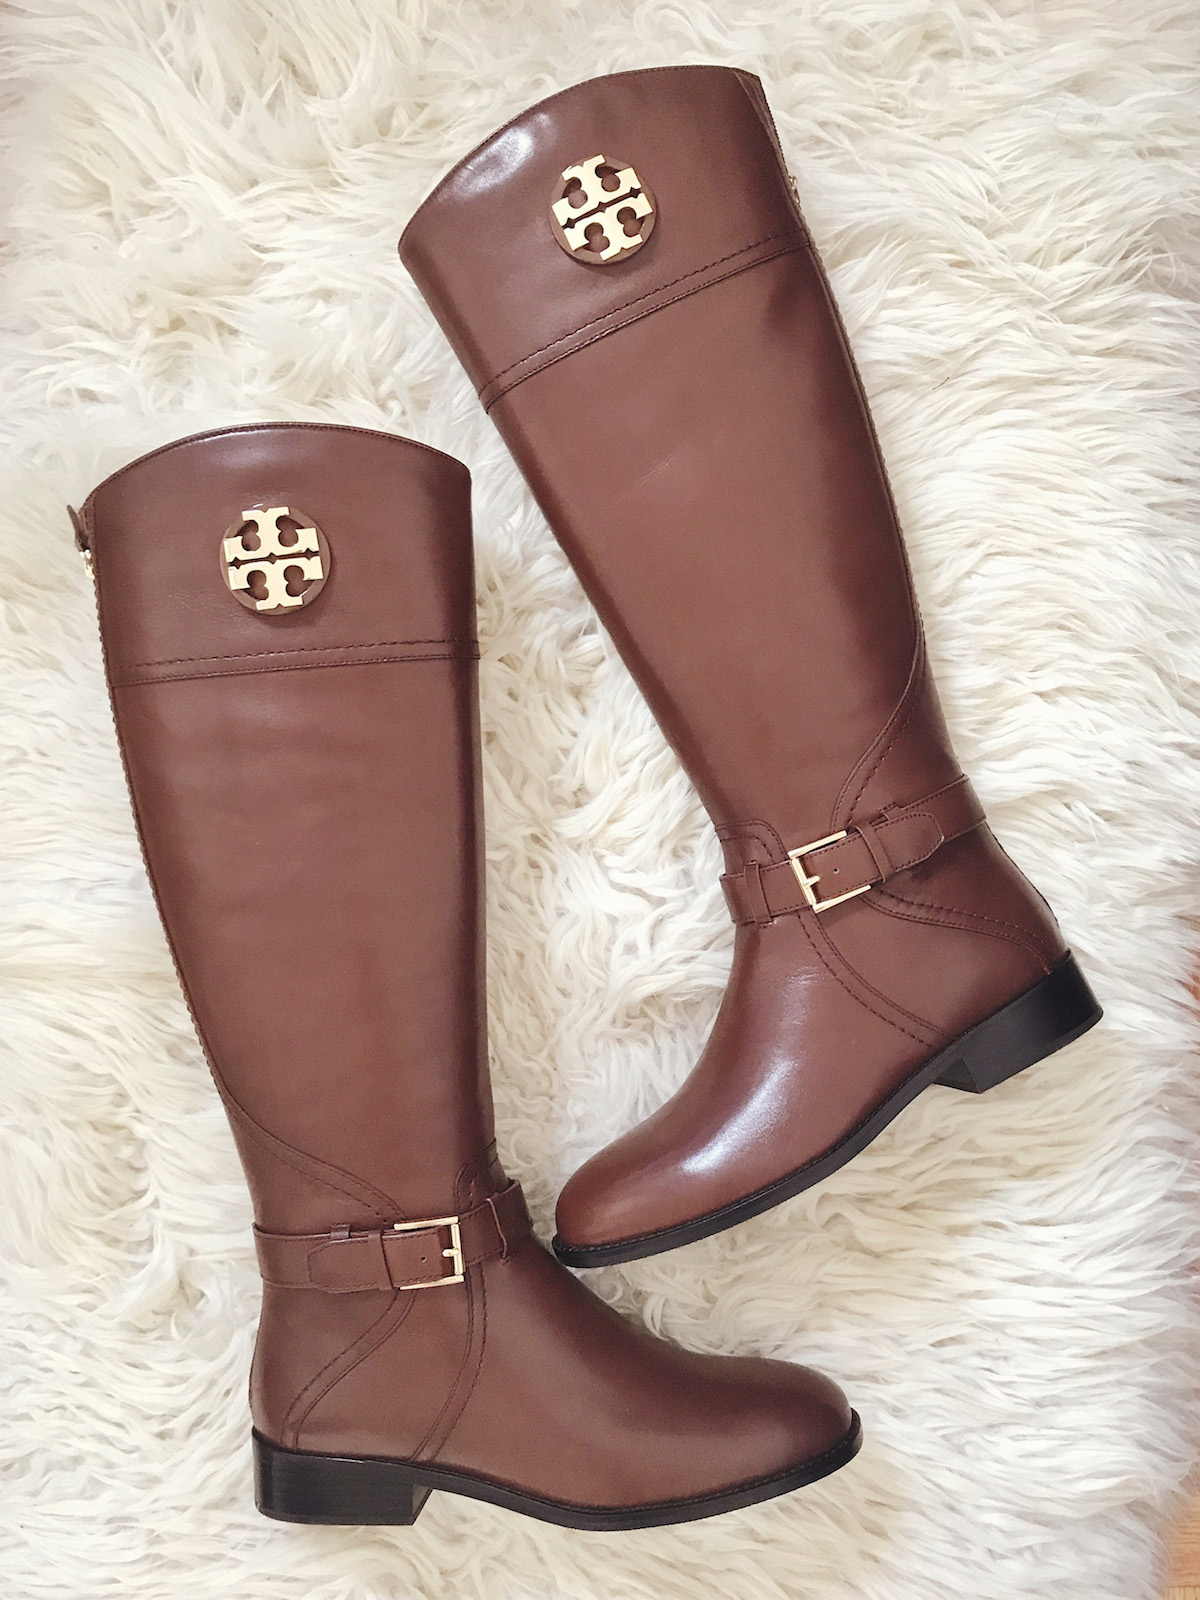 98bd3c24a5c71c Tory Burch Adeline Riding Boots. One of my all-time favorite Nordstrom  Anniversary Sale ...